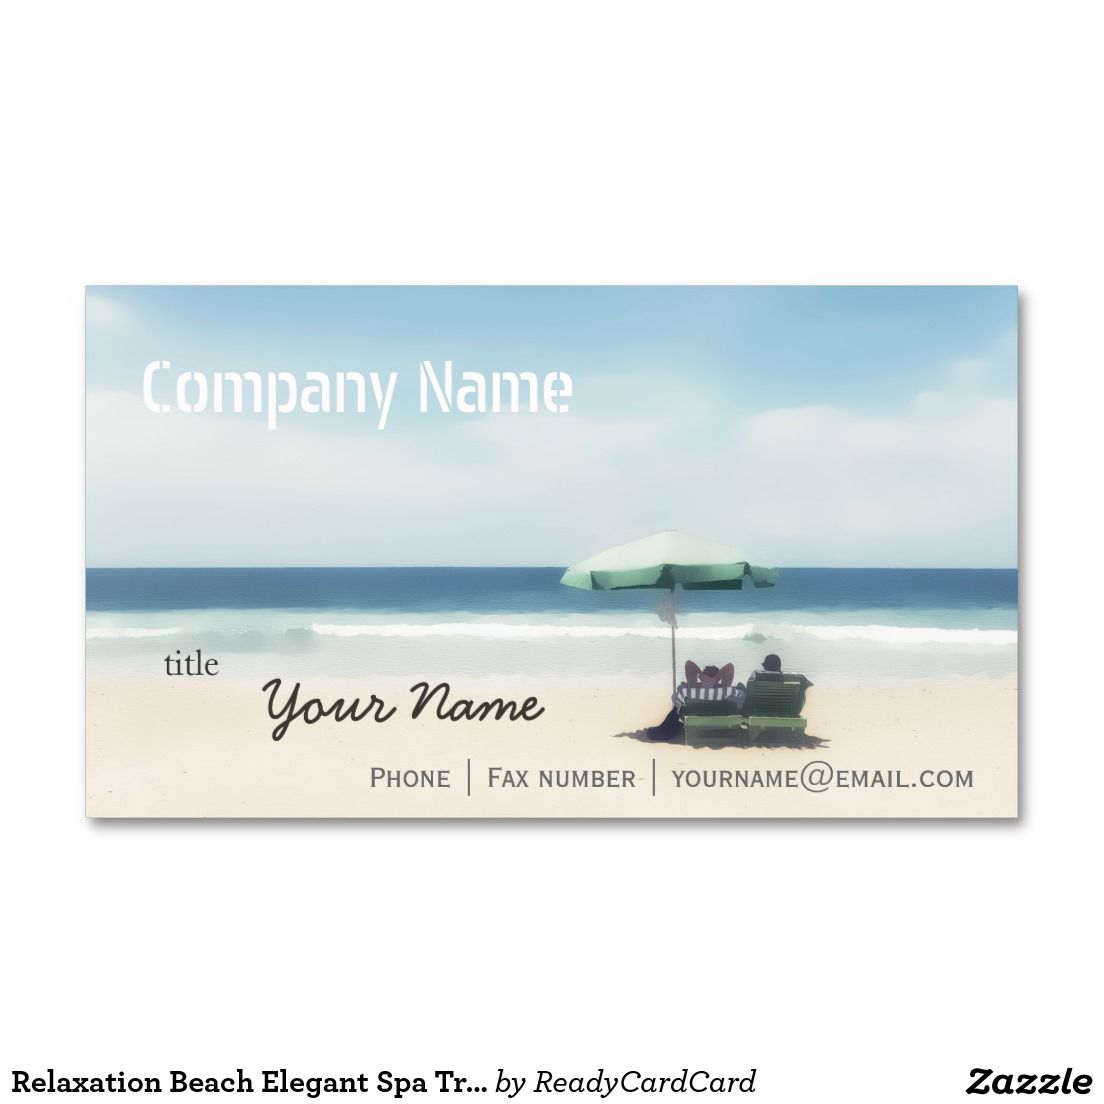 Relaxation beach elegant spa travel vacation business card relaxation beach elegant spa travel vacation standard business card reheart Choice Image